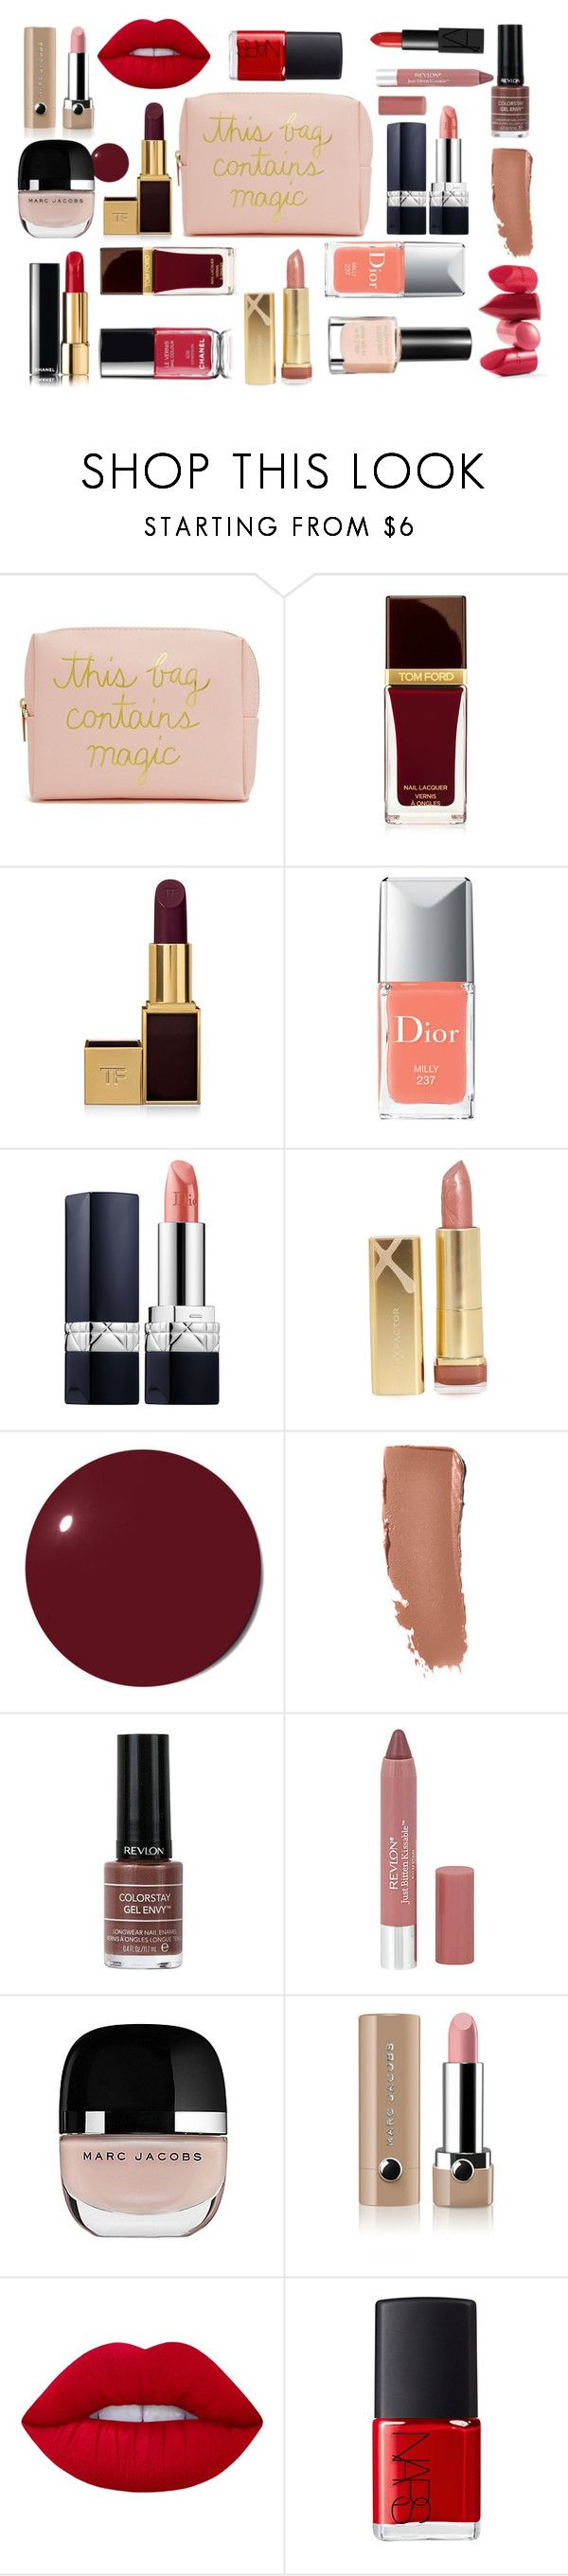 """Kit 4"" by miss-a-belle ❤ liked on Polyvore featuring beauty, Forever 21, Tom Ford, Christian Dior, Max Factor, Chanel, Rossetto, Revlon, Marc Jacobs and Lime Crime"